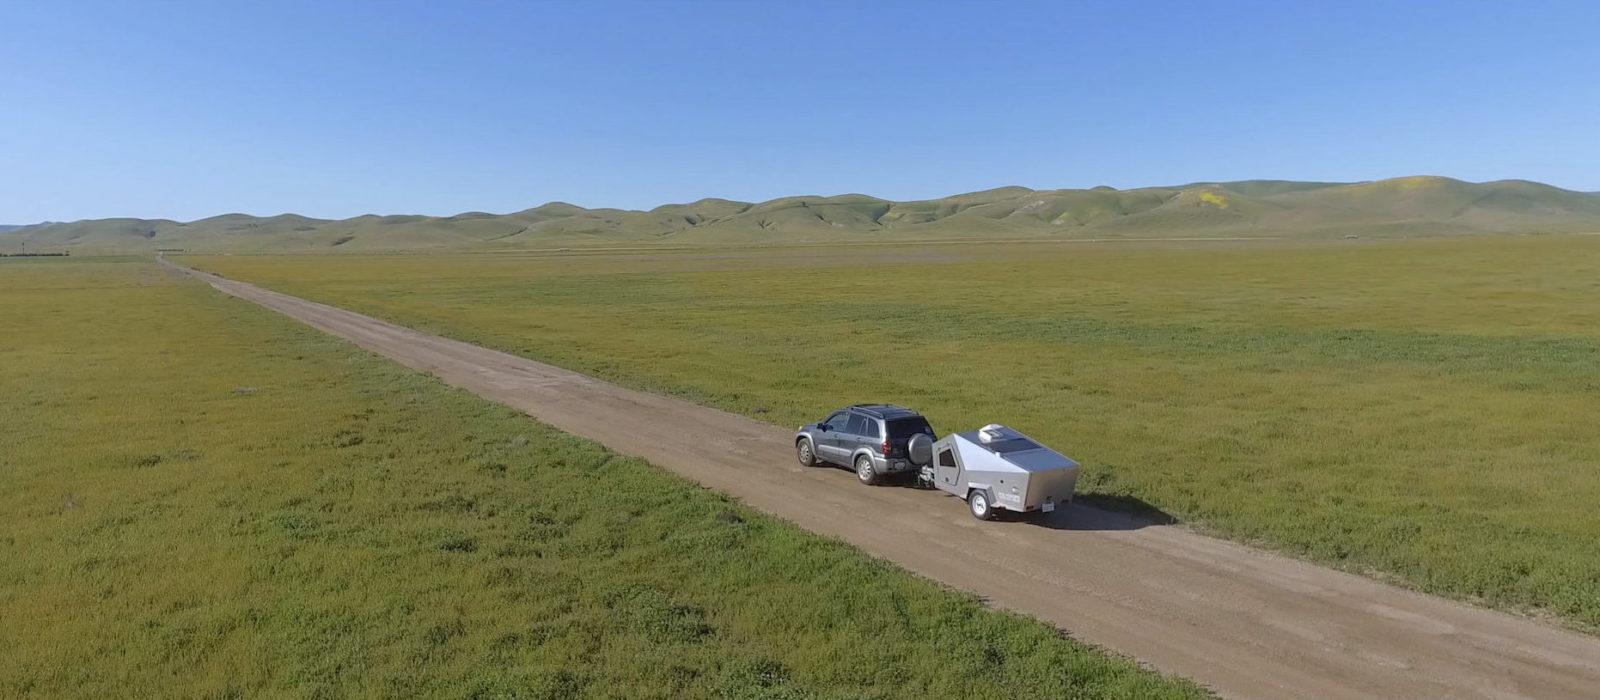 The Polydrop camper is lightweight and can be towed by most cars.